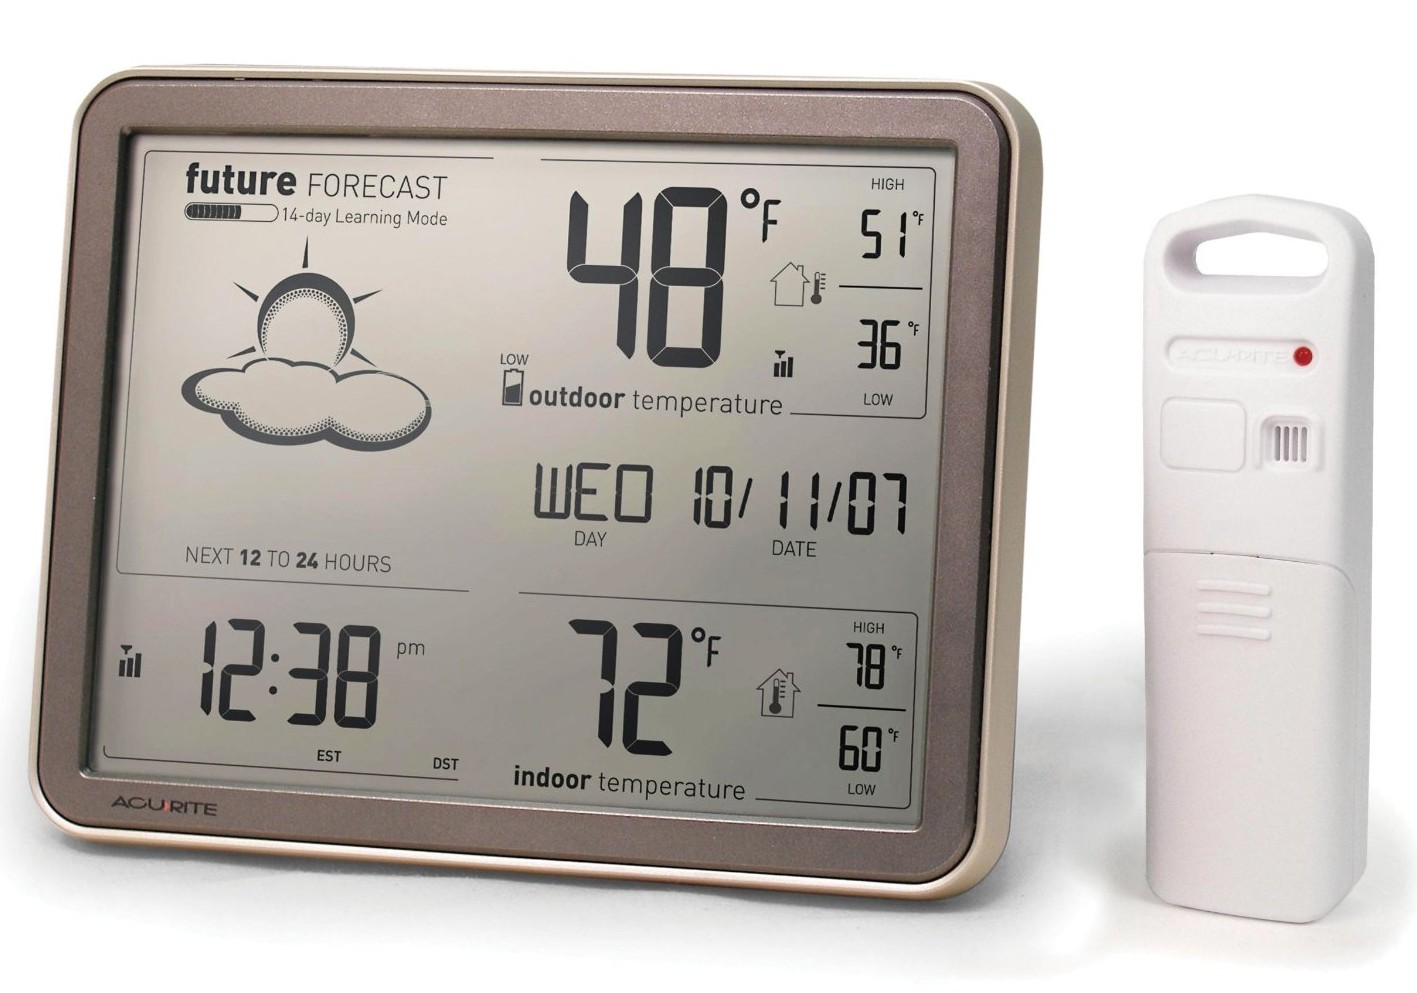 AcuRite Wireless Forecaster